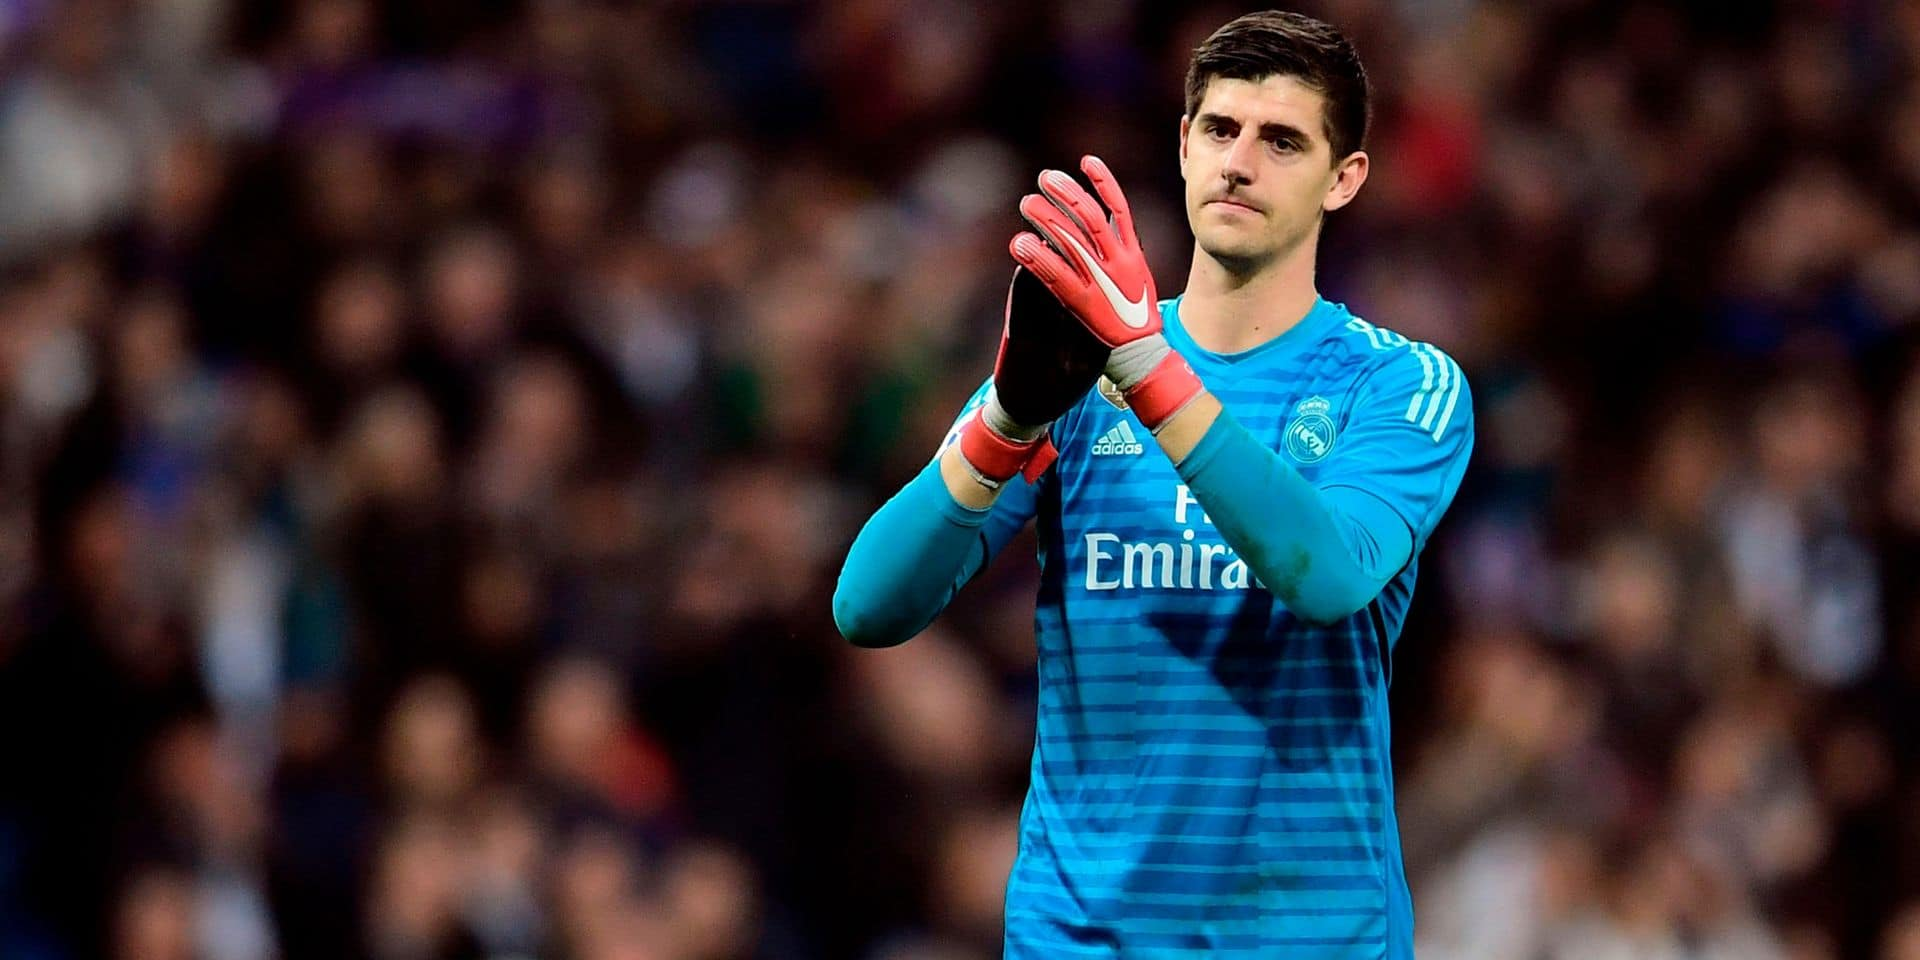 Real Madrid's Belgian goalkeeper Thibaut Courtois celebrates at the end of the Spanish league football match between Real Madrid CF and Real Valladolid FC at the Santiago Bernabeu stadium in Madrid on November 3, 2018. (Photo by JAVIER SORIANO / AFP)